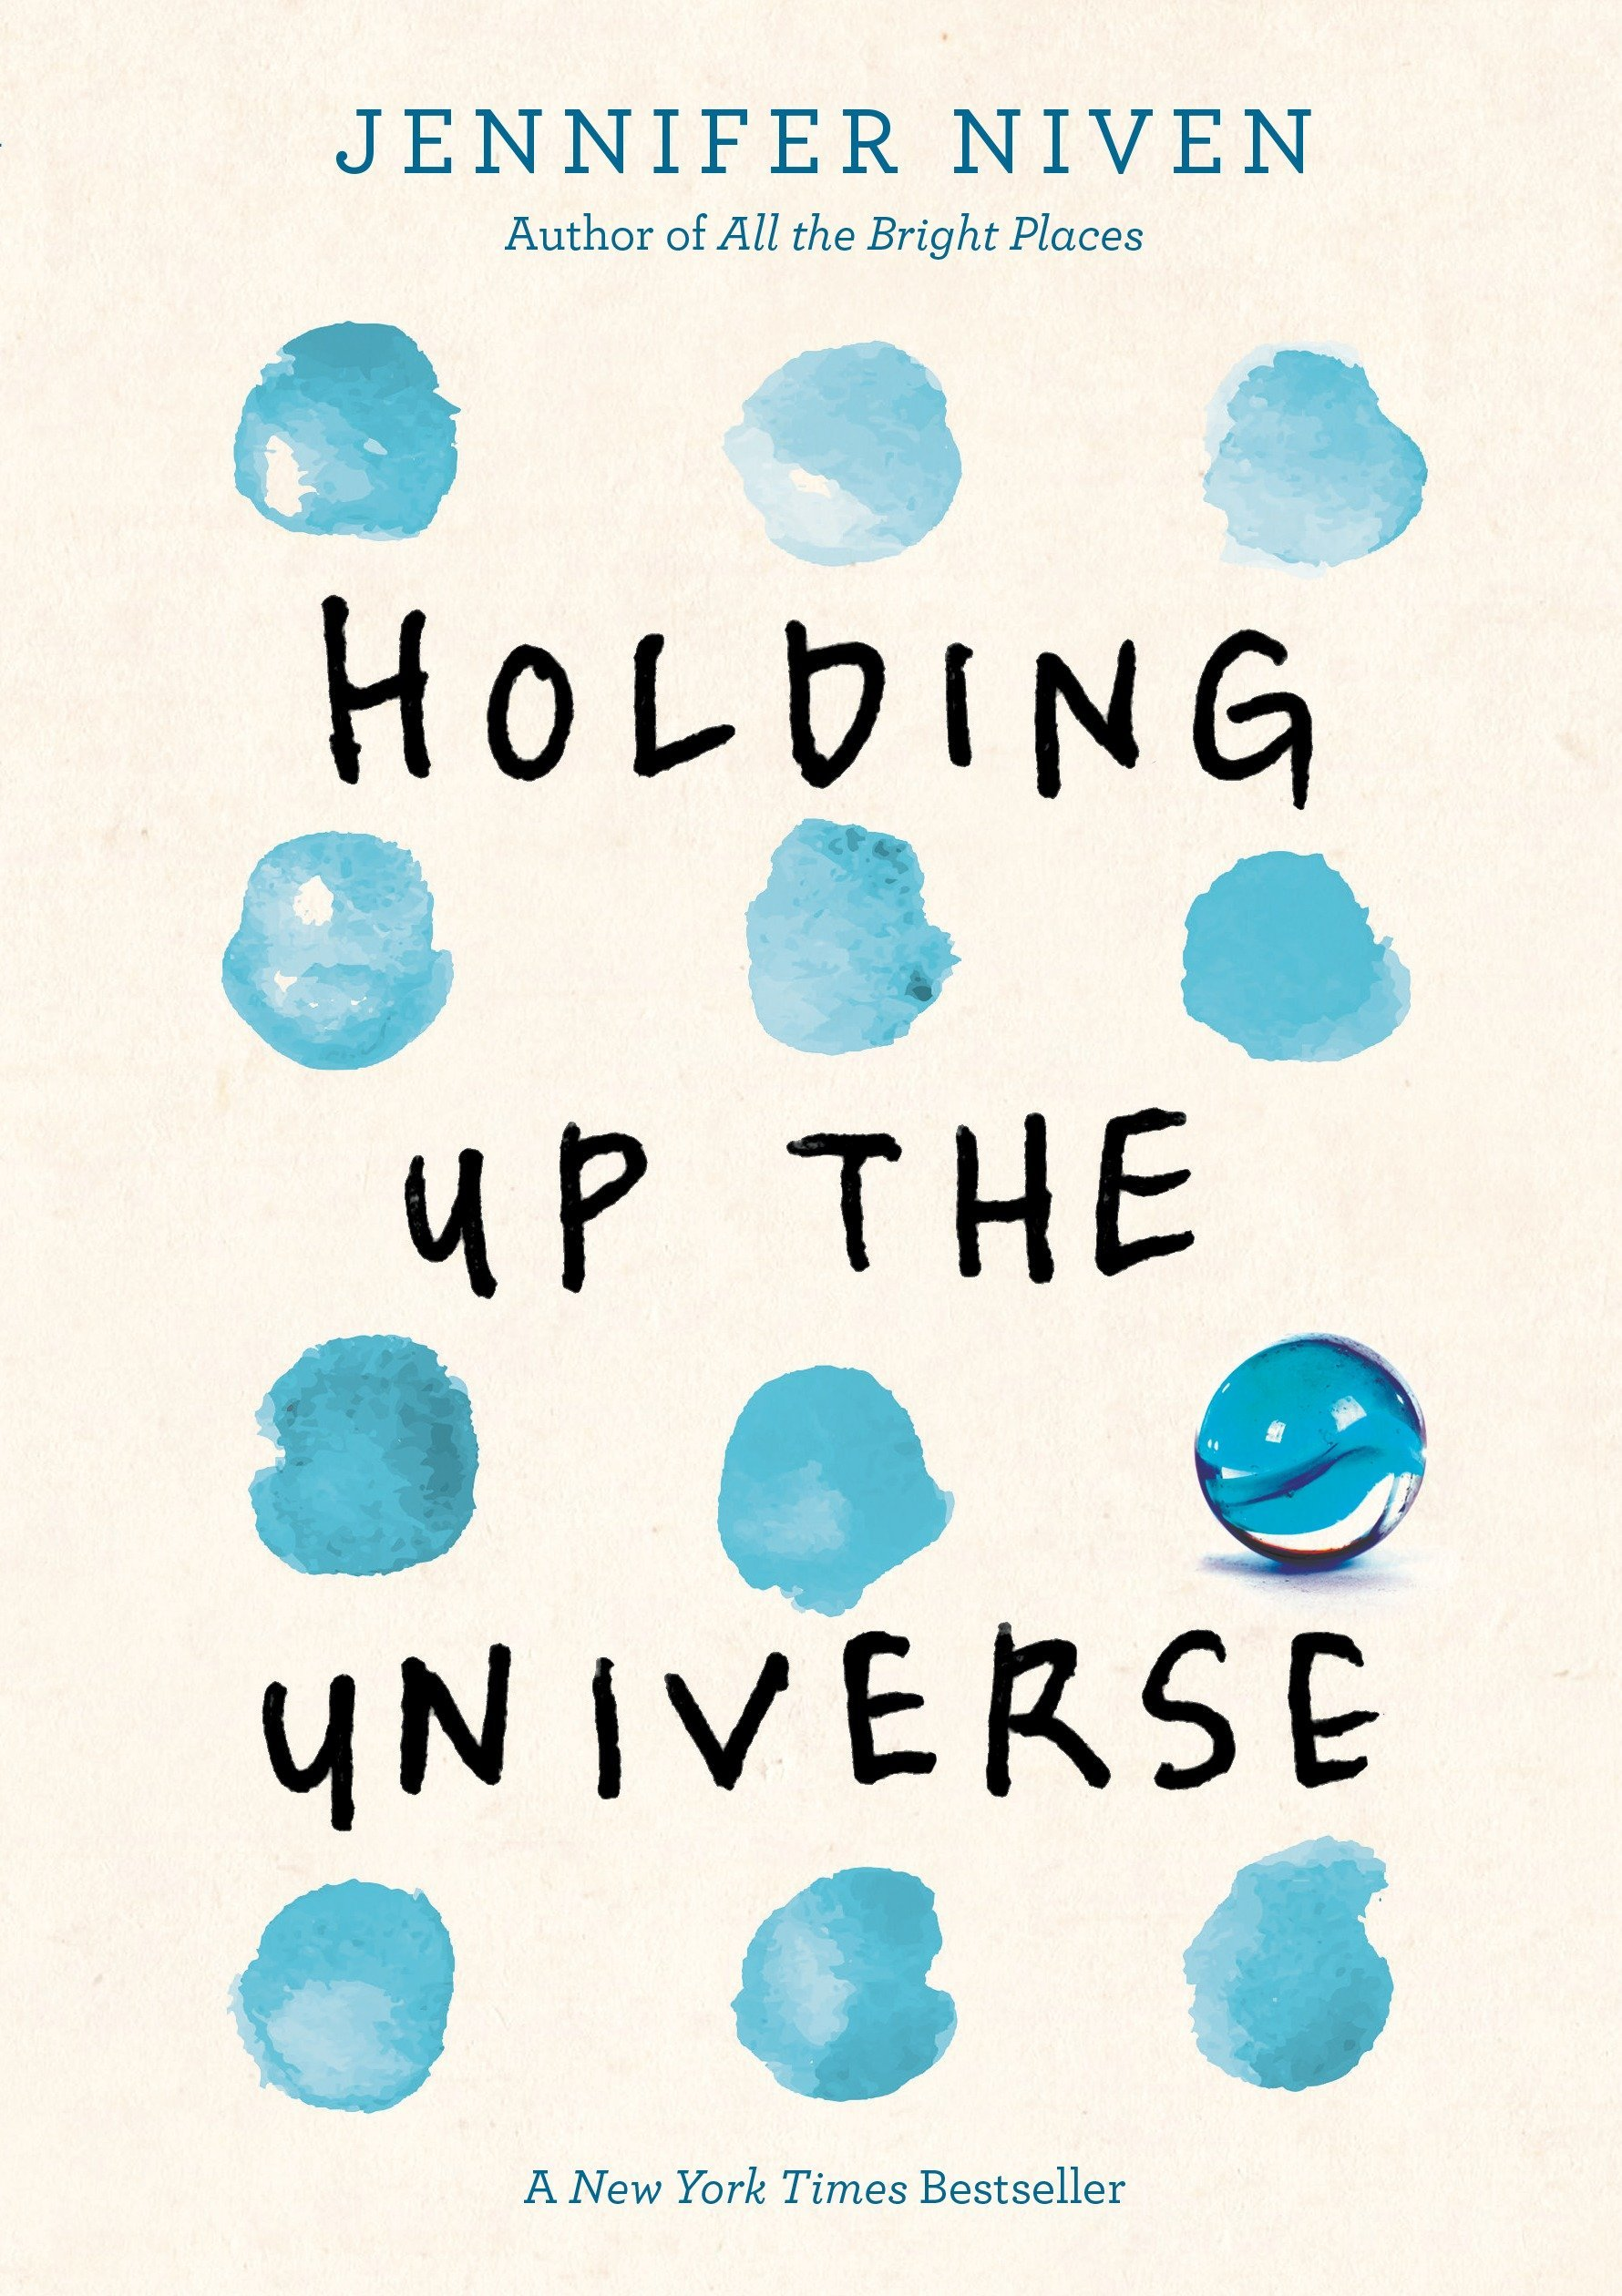 Amazon.com: Holding Up the Universe (9780385755924): Niven ...